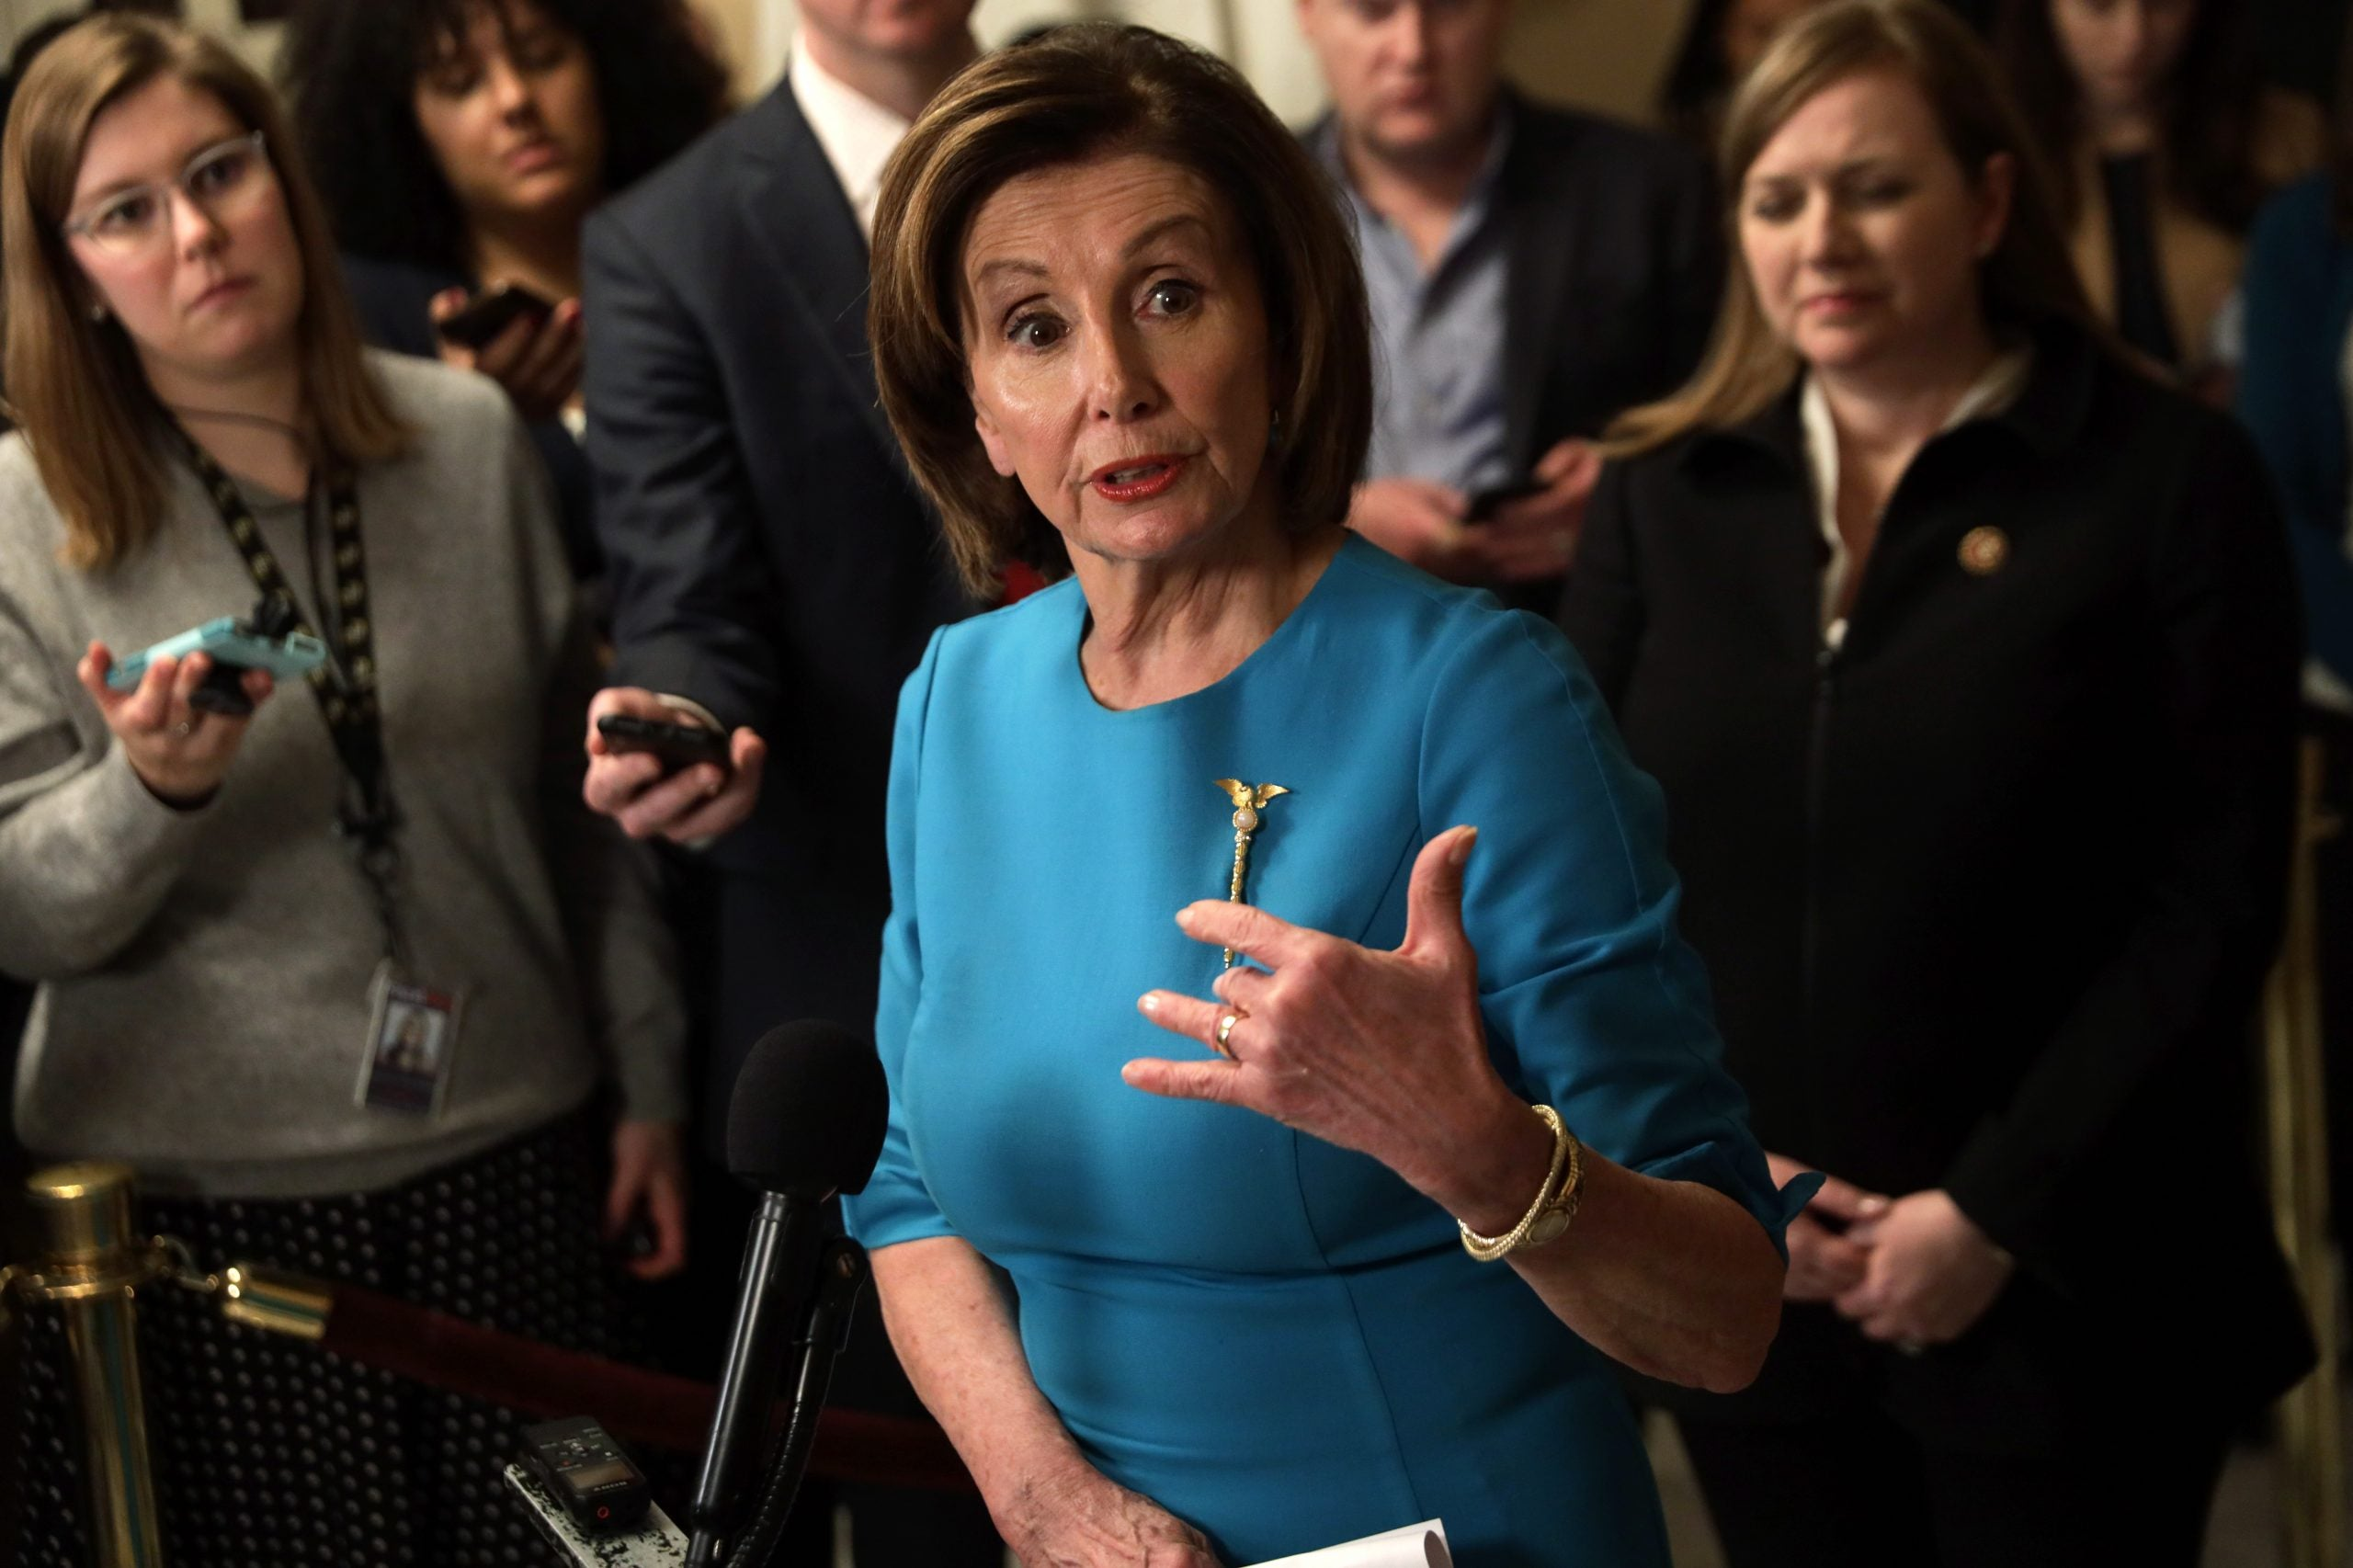 U.S. Speaker of the House Rep. Nancy Pelosi (D-CA) speaks to members of the media at the U.S. Capitol March 13, 2020 in Washington, DC. Speaker Pelosi held a briefing on the Coronavirus Aid Package Bill that will help families get a free meal during school closures